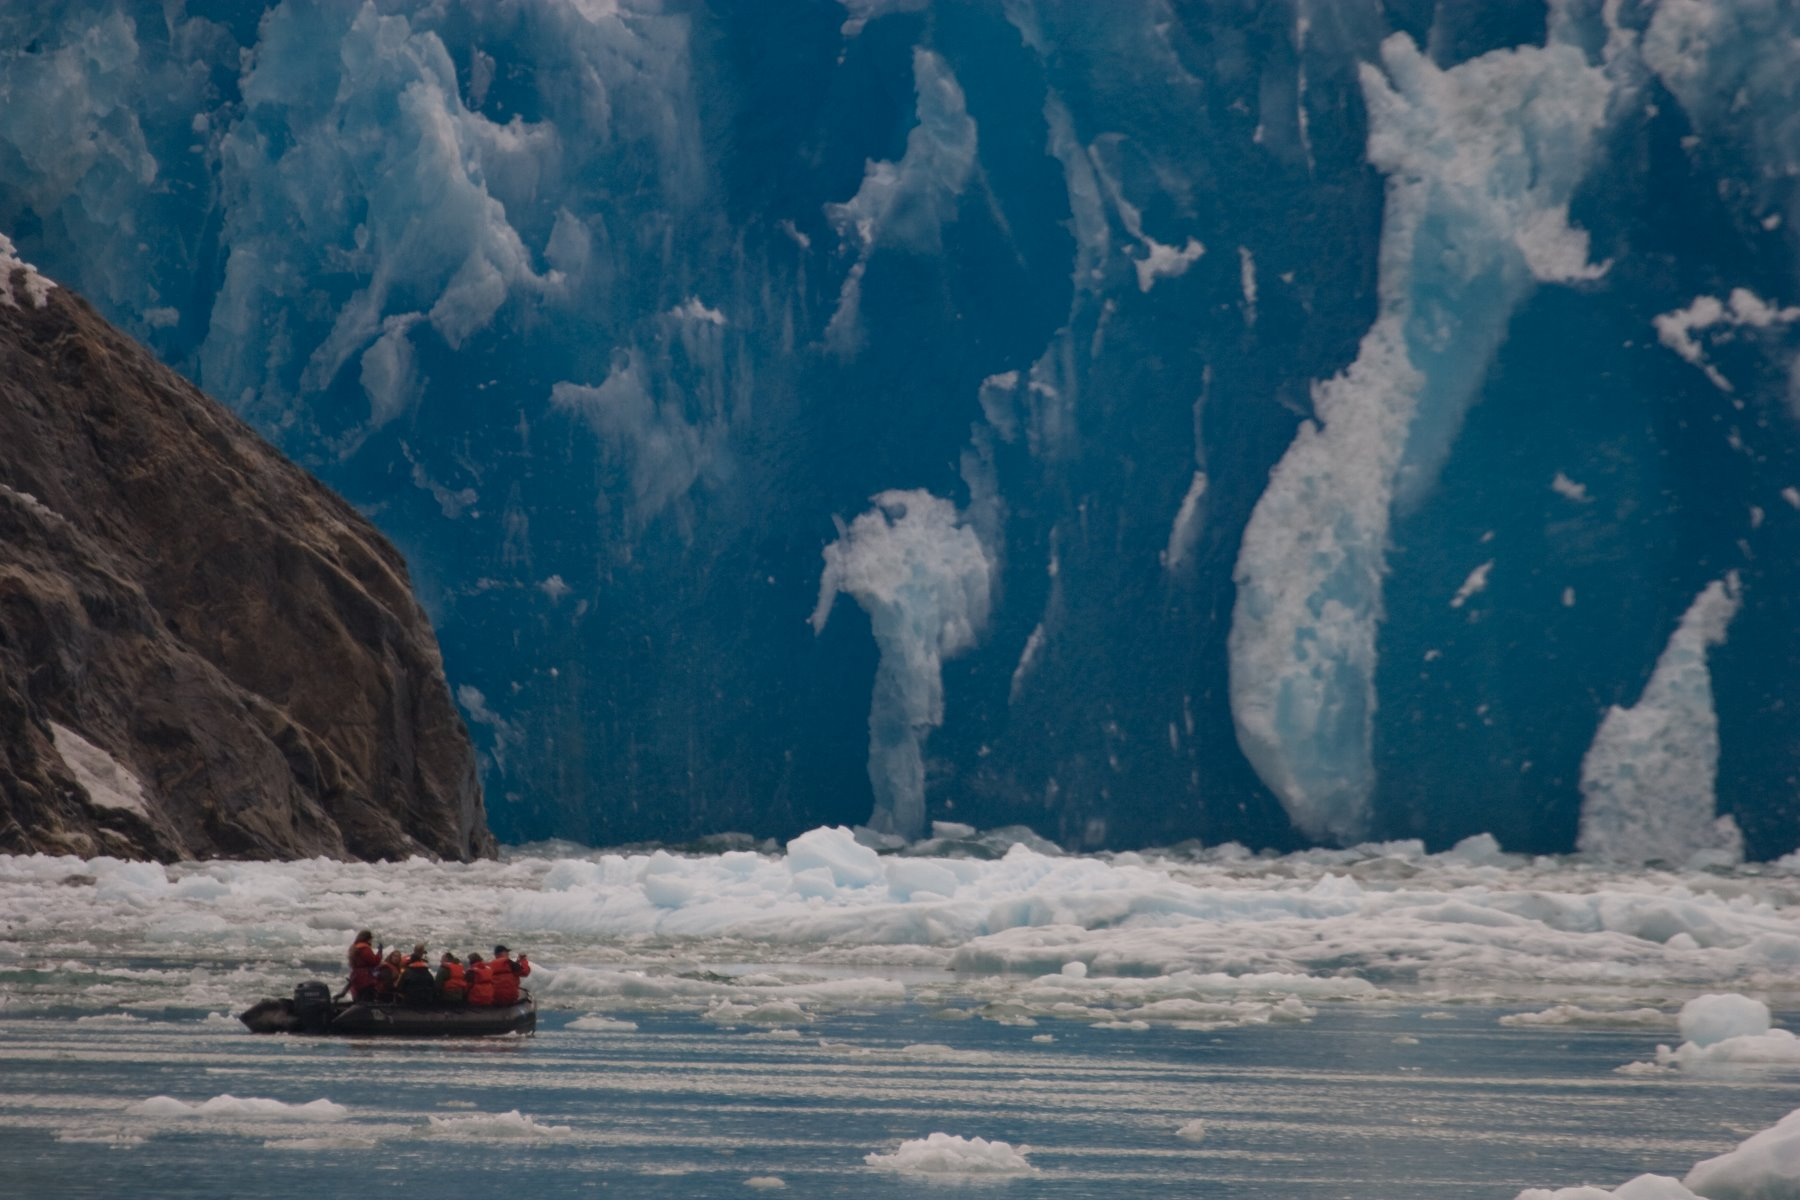 South Sawyer Glacier in Tracy Arm is under intense pressure.